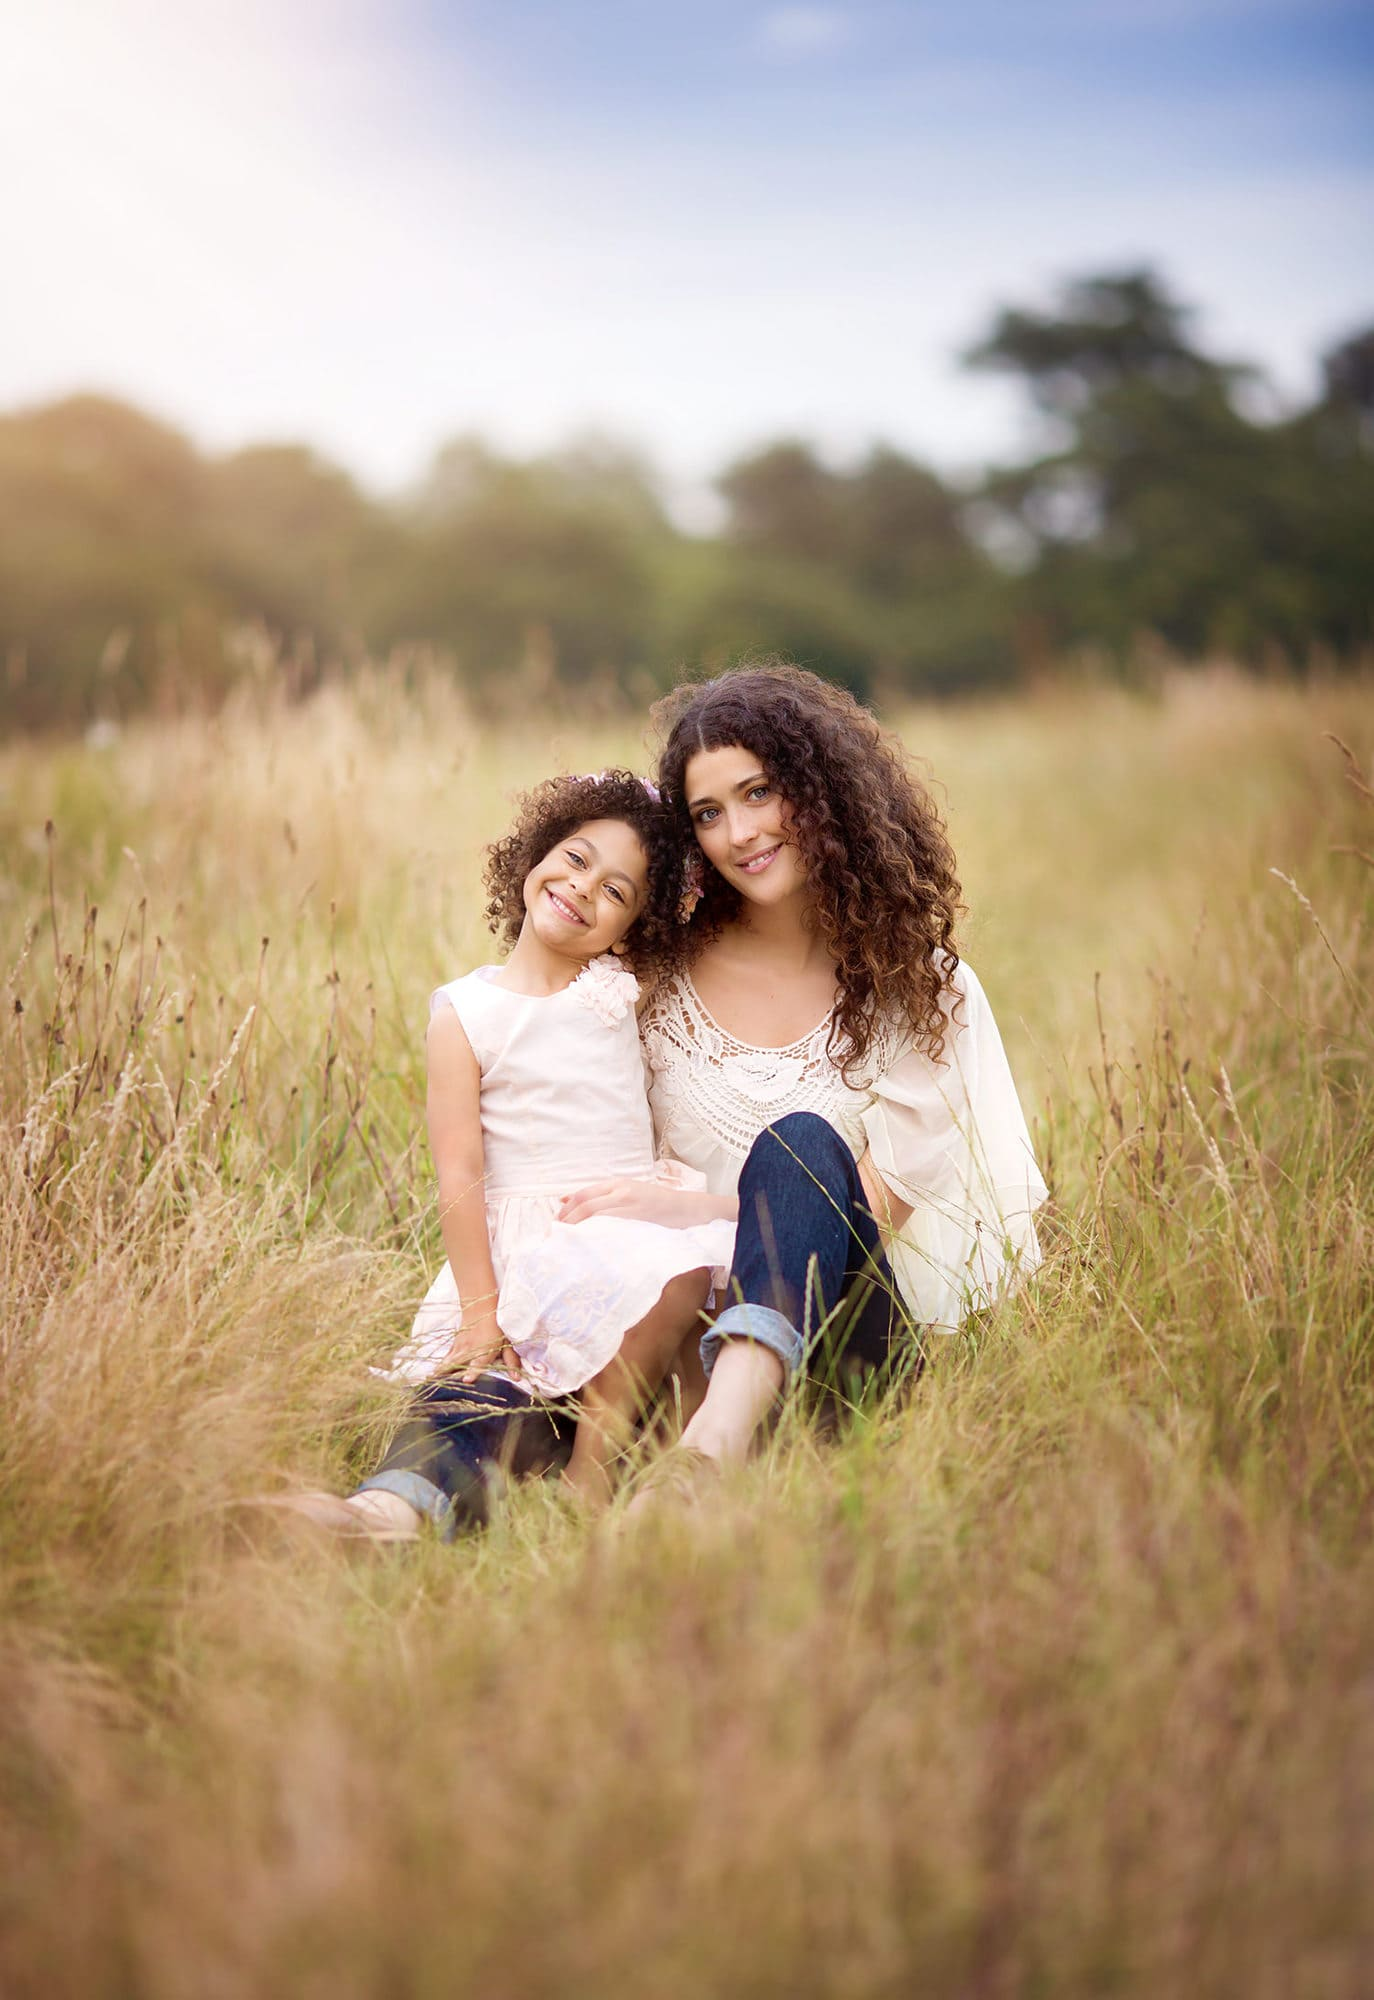 Mum and daughter outdoor photography